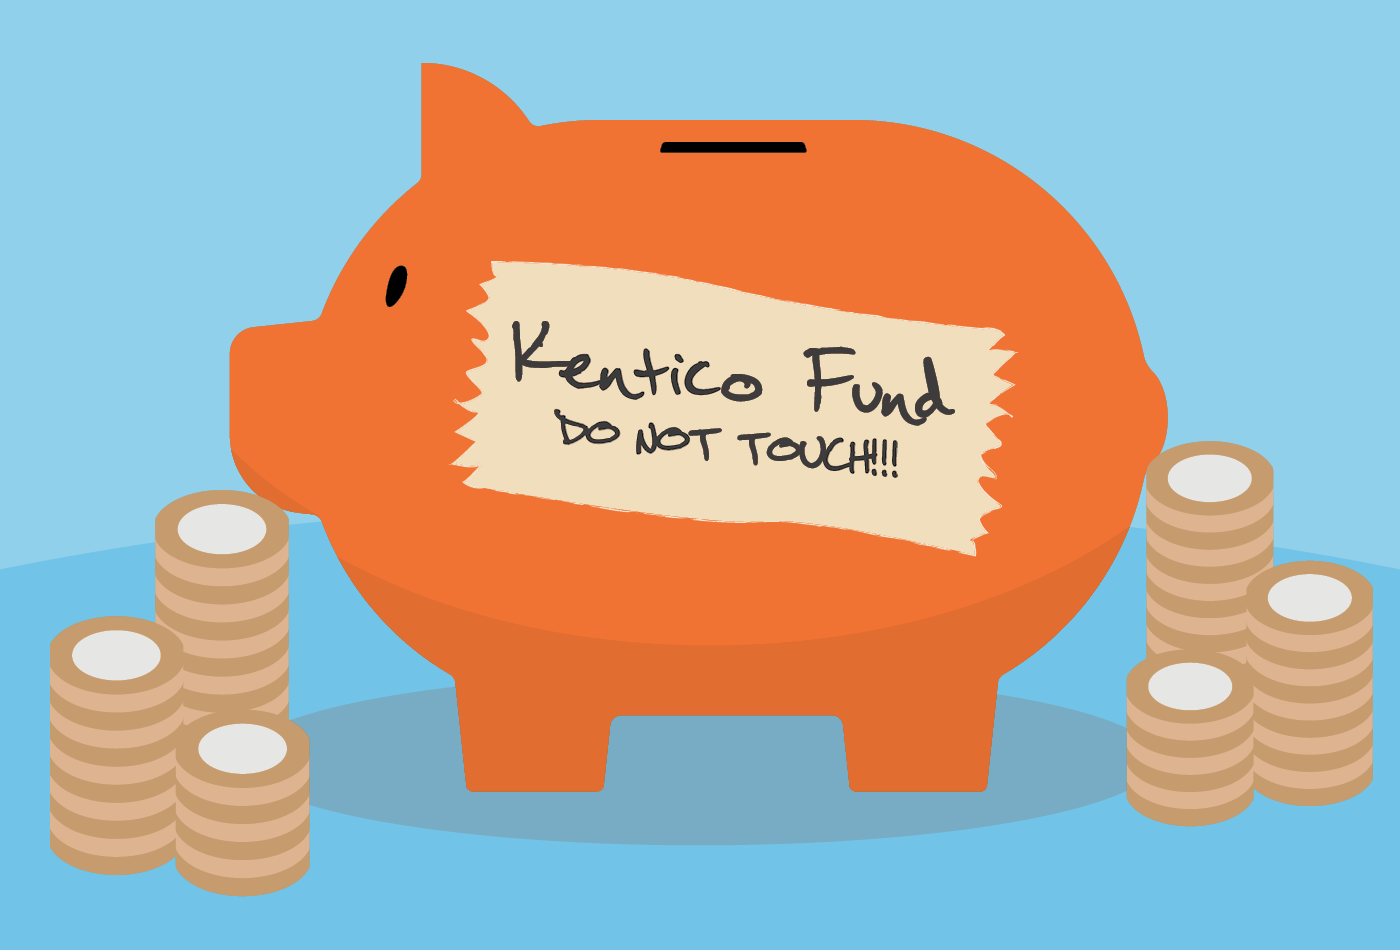 Breaking down the costs of a Kentico website